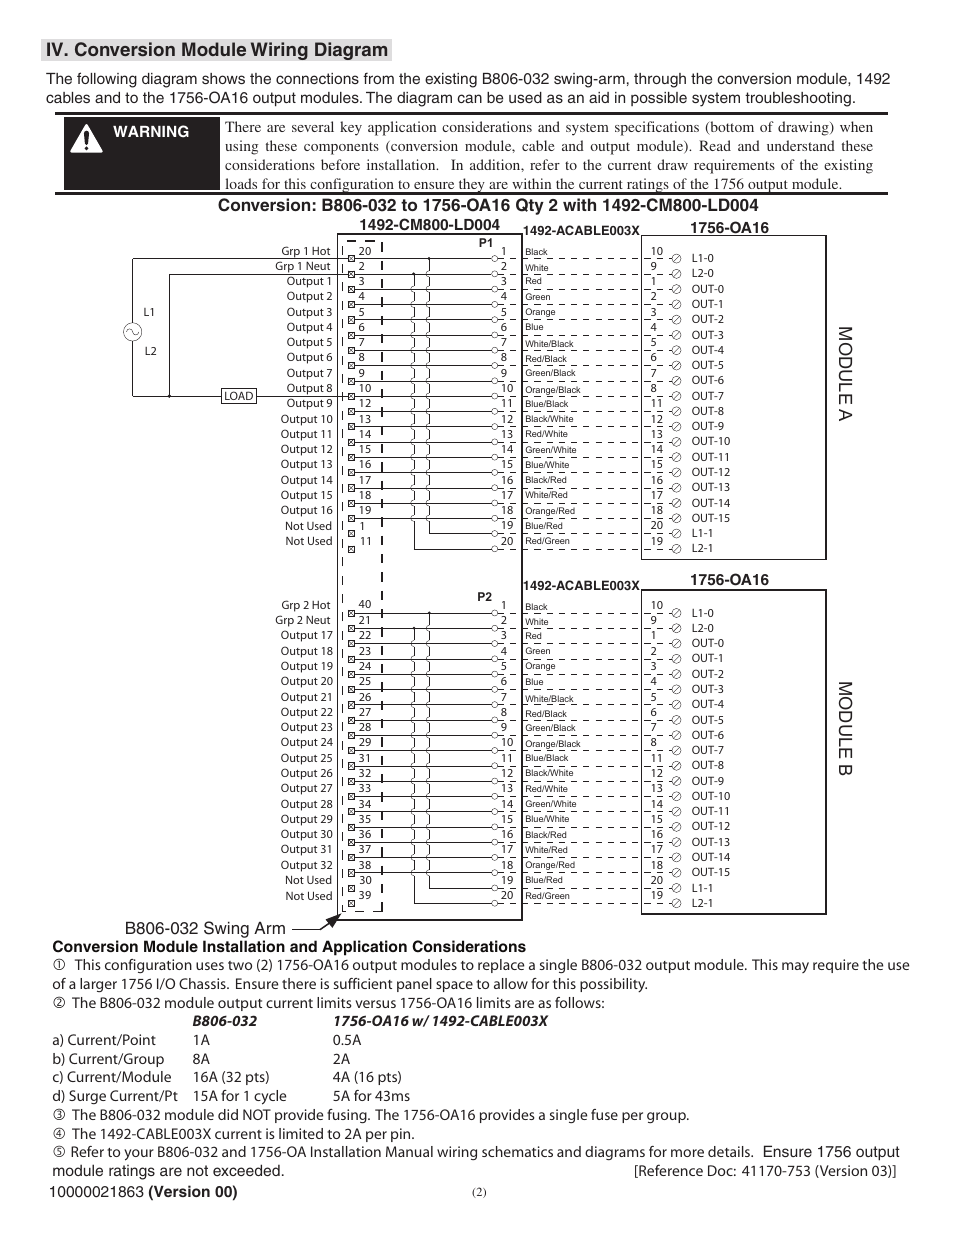 rockwell automation 1492 cm800 ld004 field wire conv module for modicon b806 032 to 1756 oa16 page2?resize\\\=665%2C861 hyosung gt250r wiring diagram beta wiring diagram, tomos wiring garelli wiring diagram at n-0.co